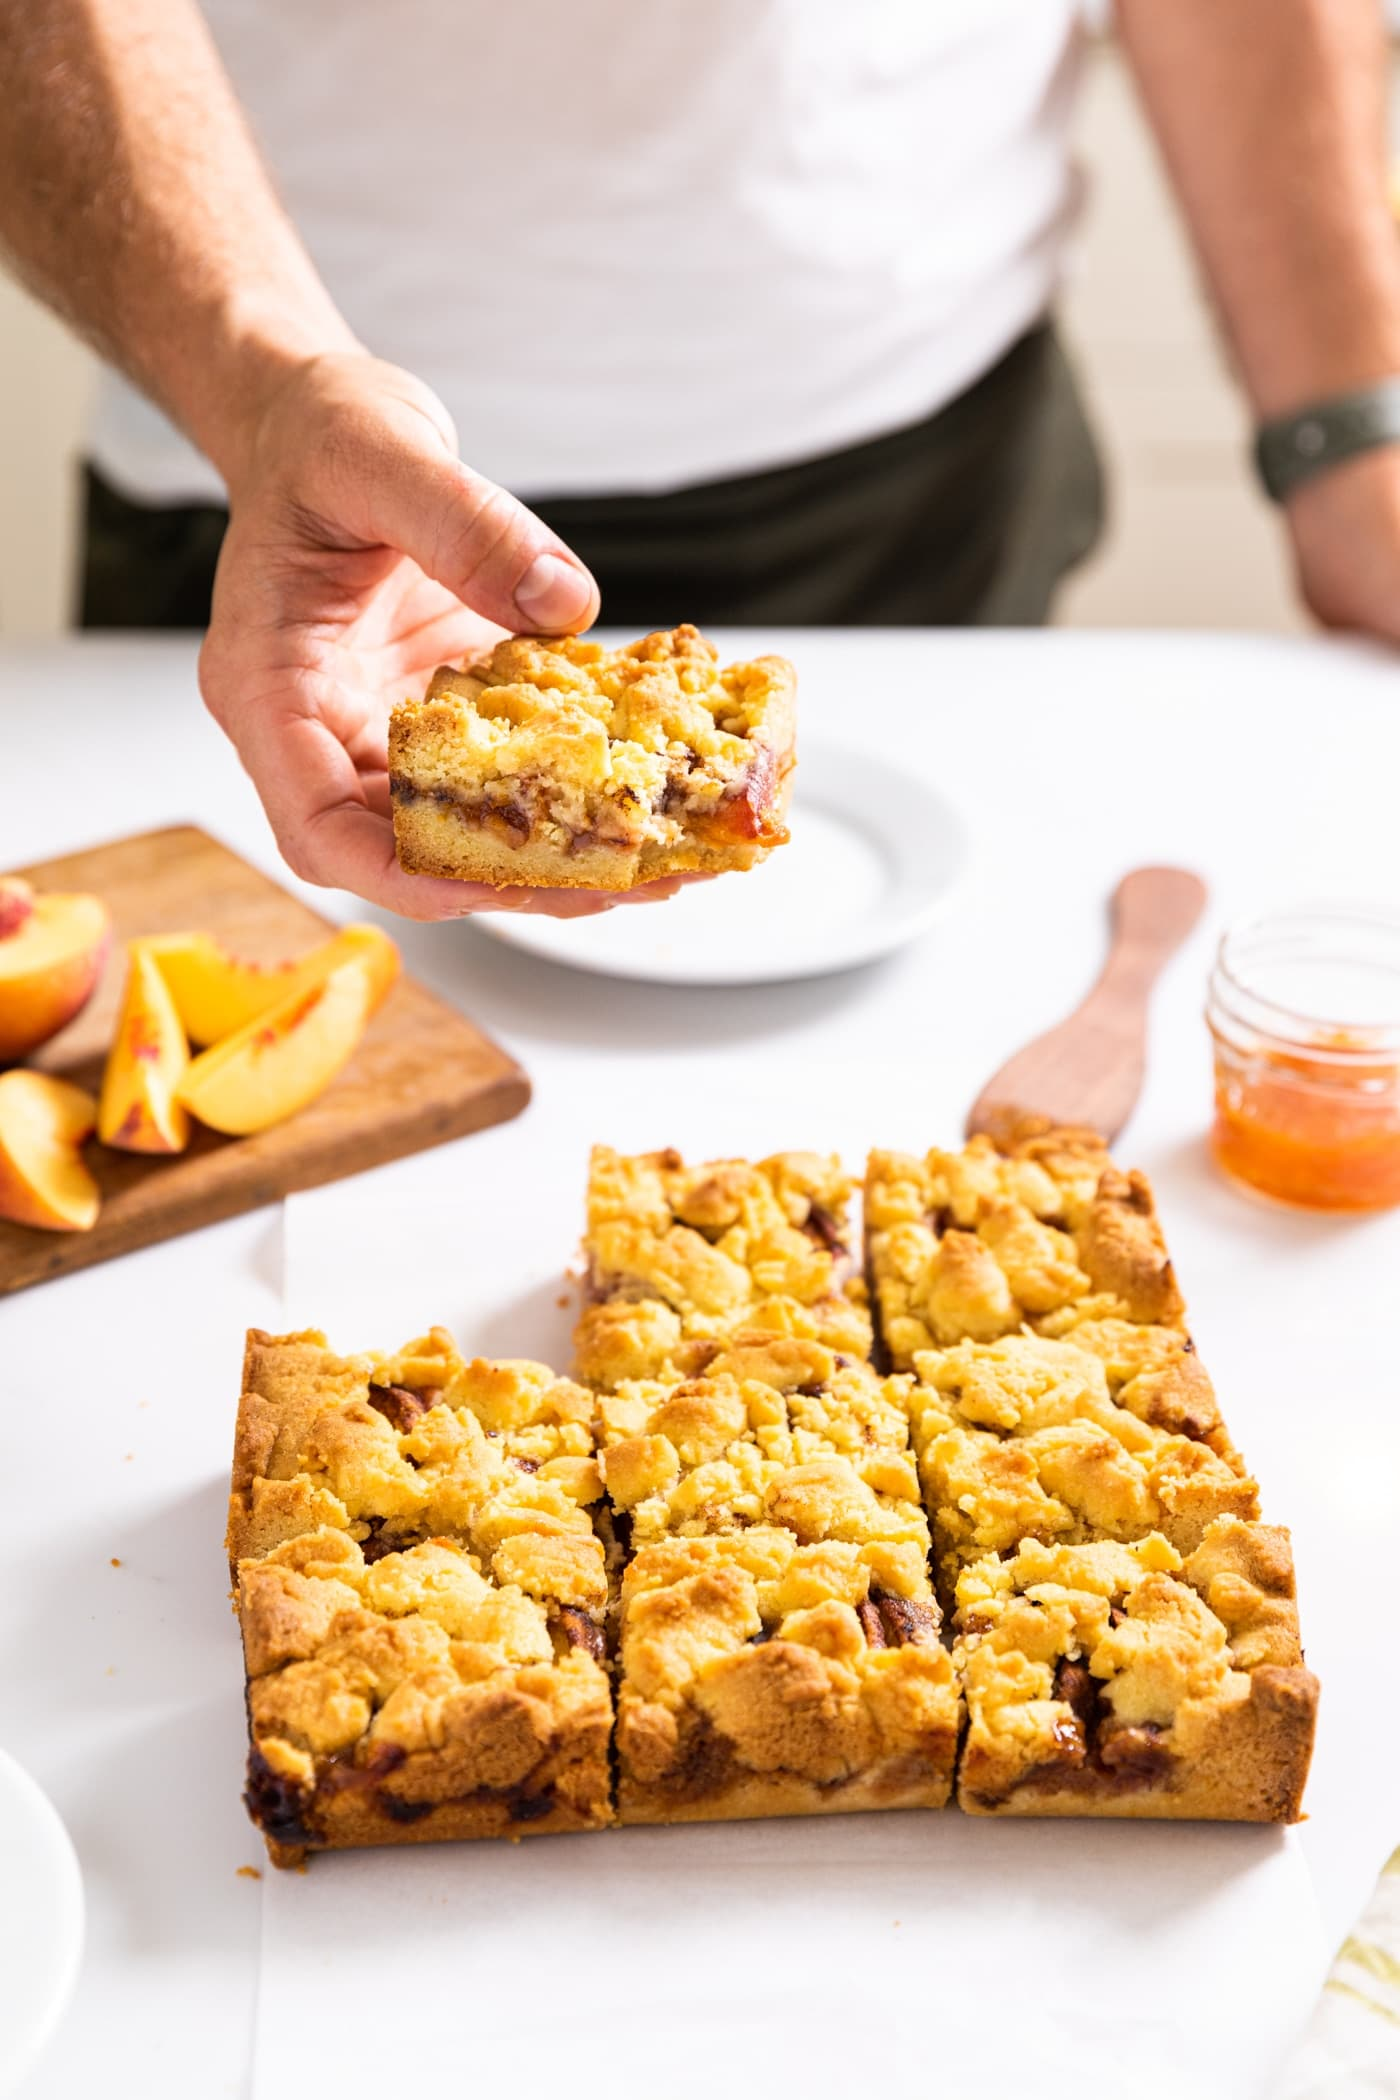 One hand holding single piece of a peach crumb bar with rest of bars sitting on white countertop below